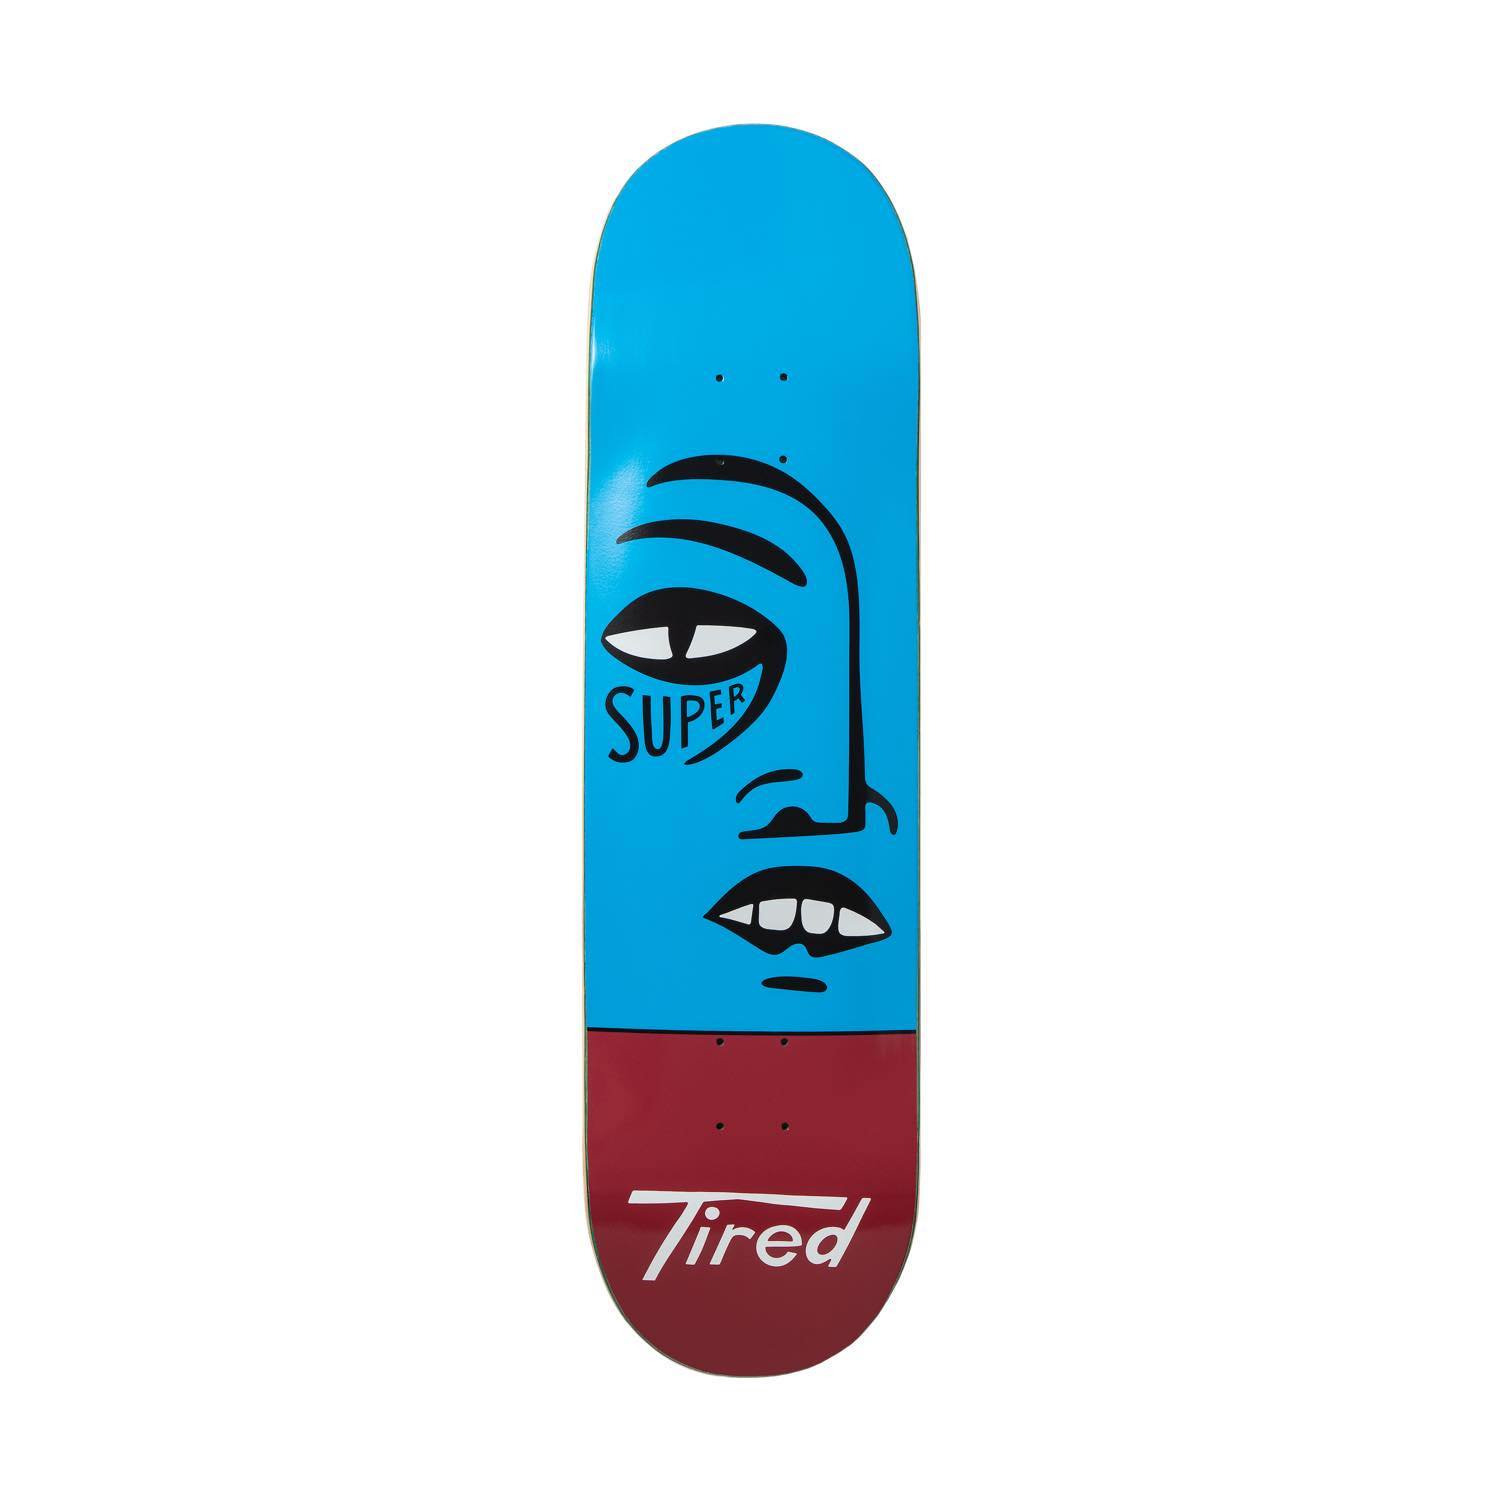 <img class='new_mark_img1' src='https://img.shop-pro.jp/img/new/icons8.gif' style='border:none;display:inline;margin:0px;padding:0px;width:auto;' />Tired タイレッド / SUPER TIRED SKATEBOARD/REGULAR